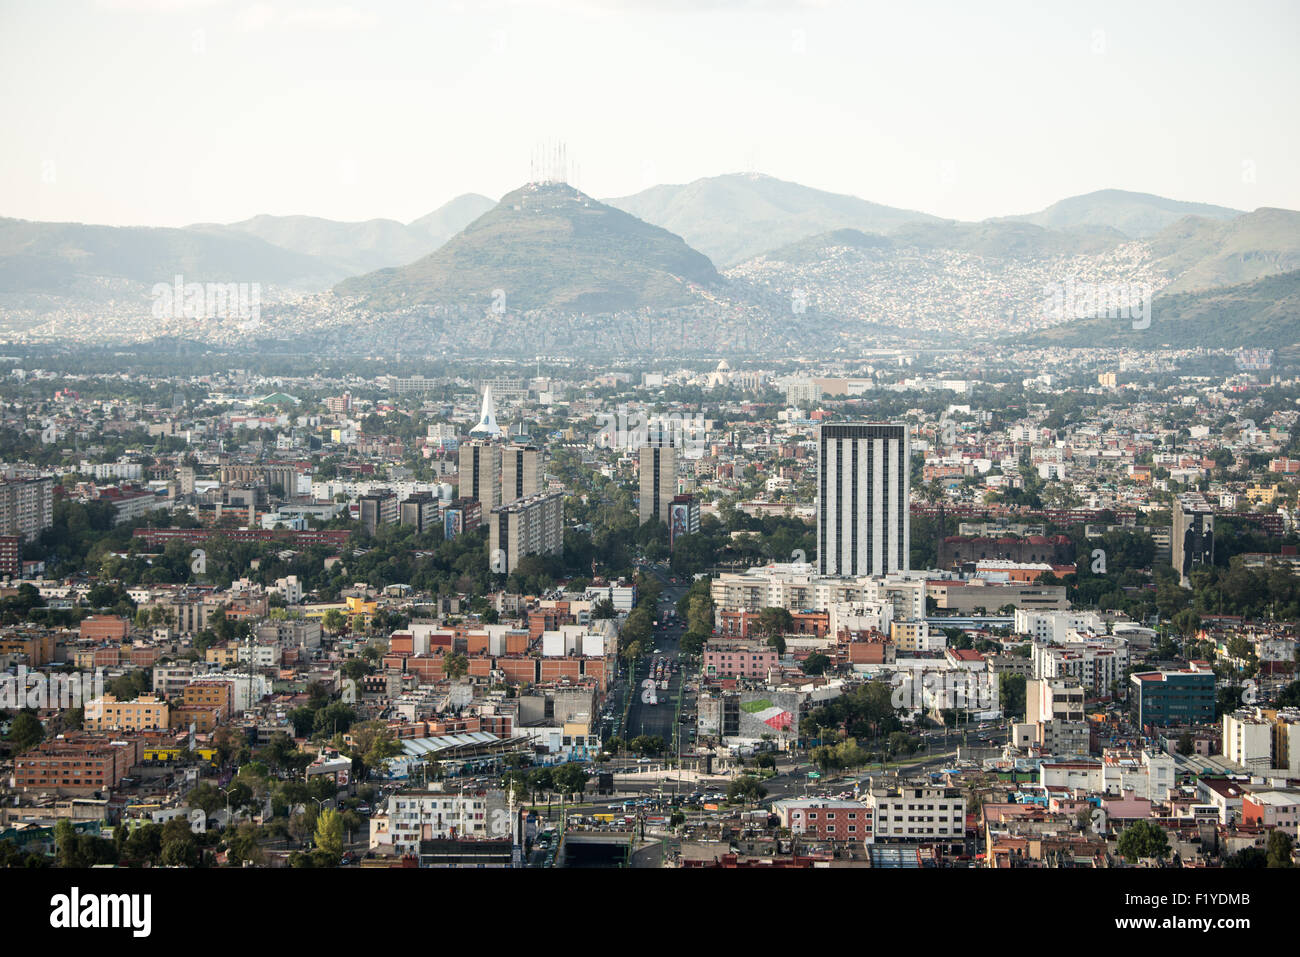 View of Mexico City from the 44th floor of the Torre Latinoamericana building. - Stock Image